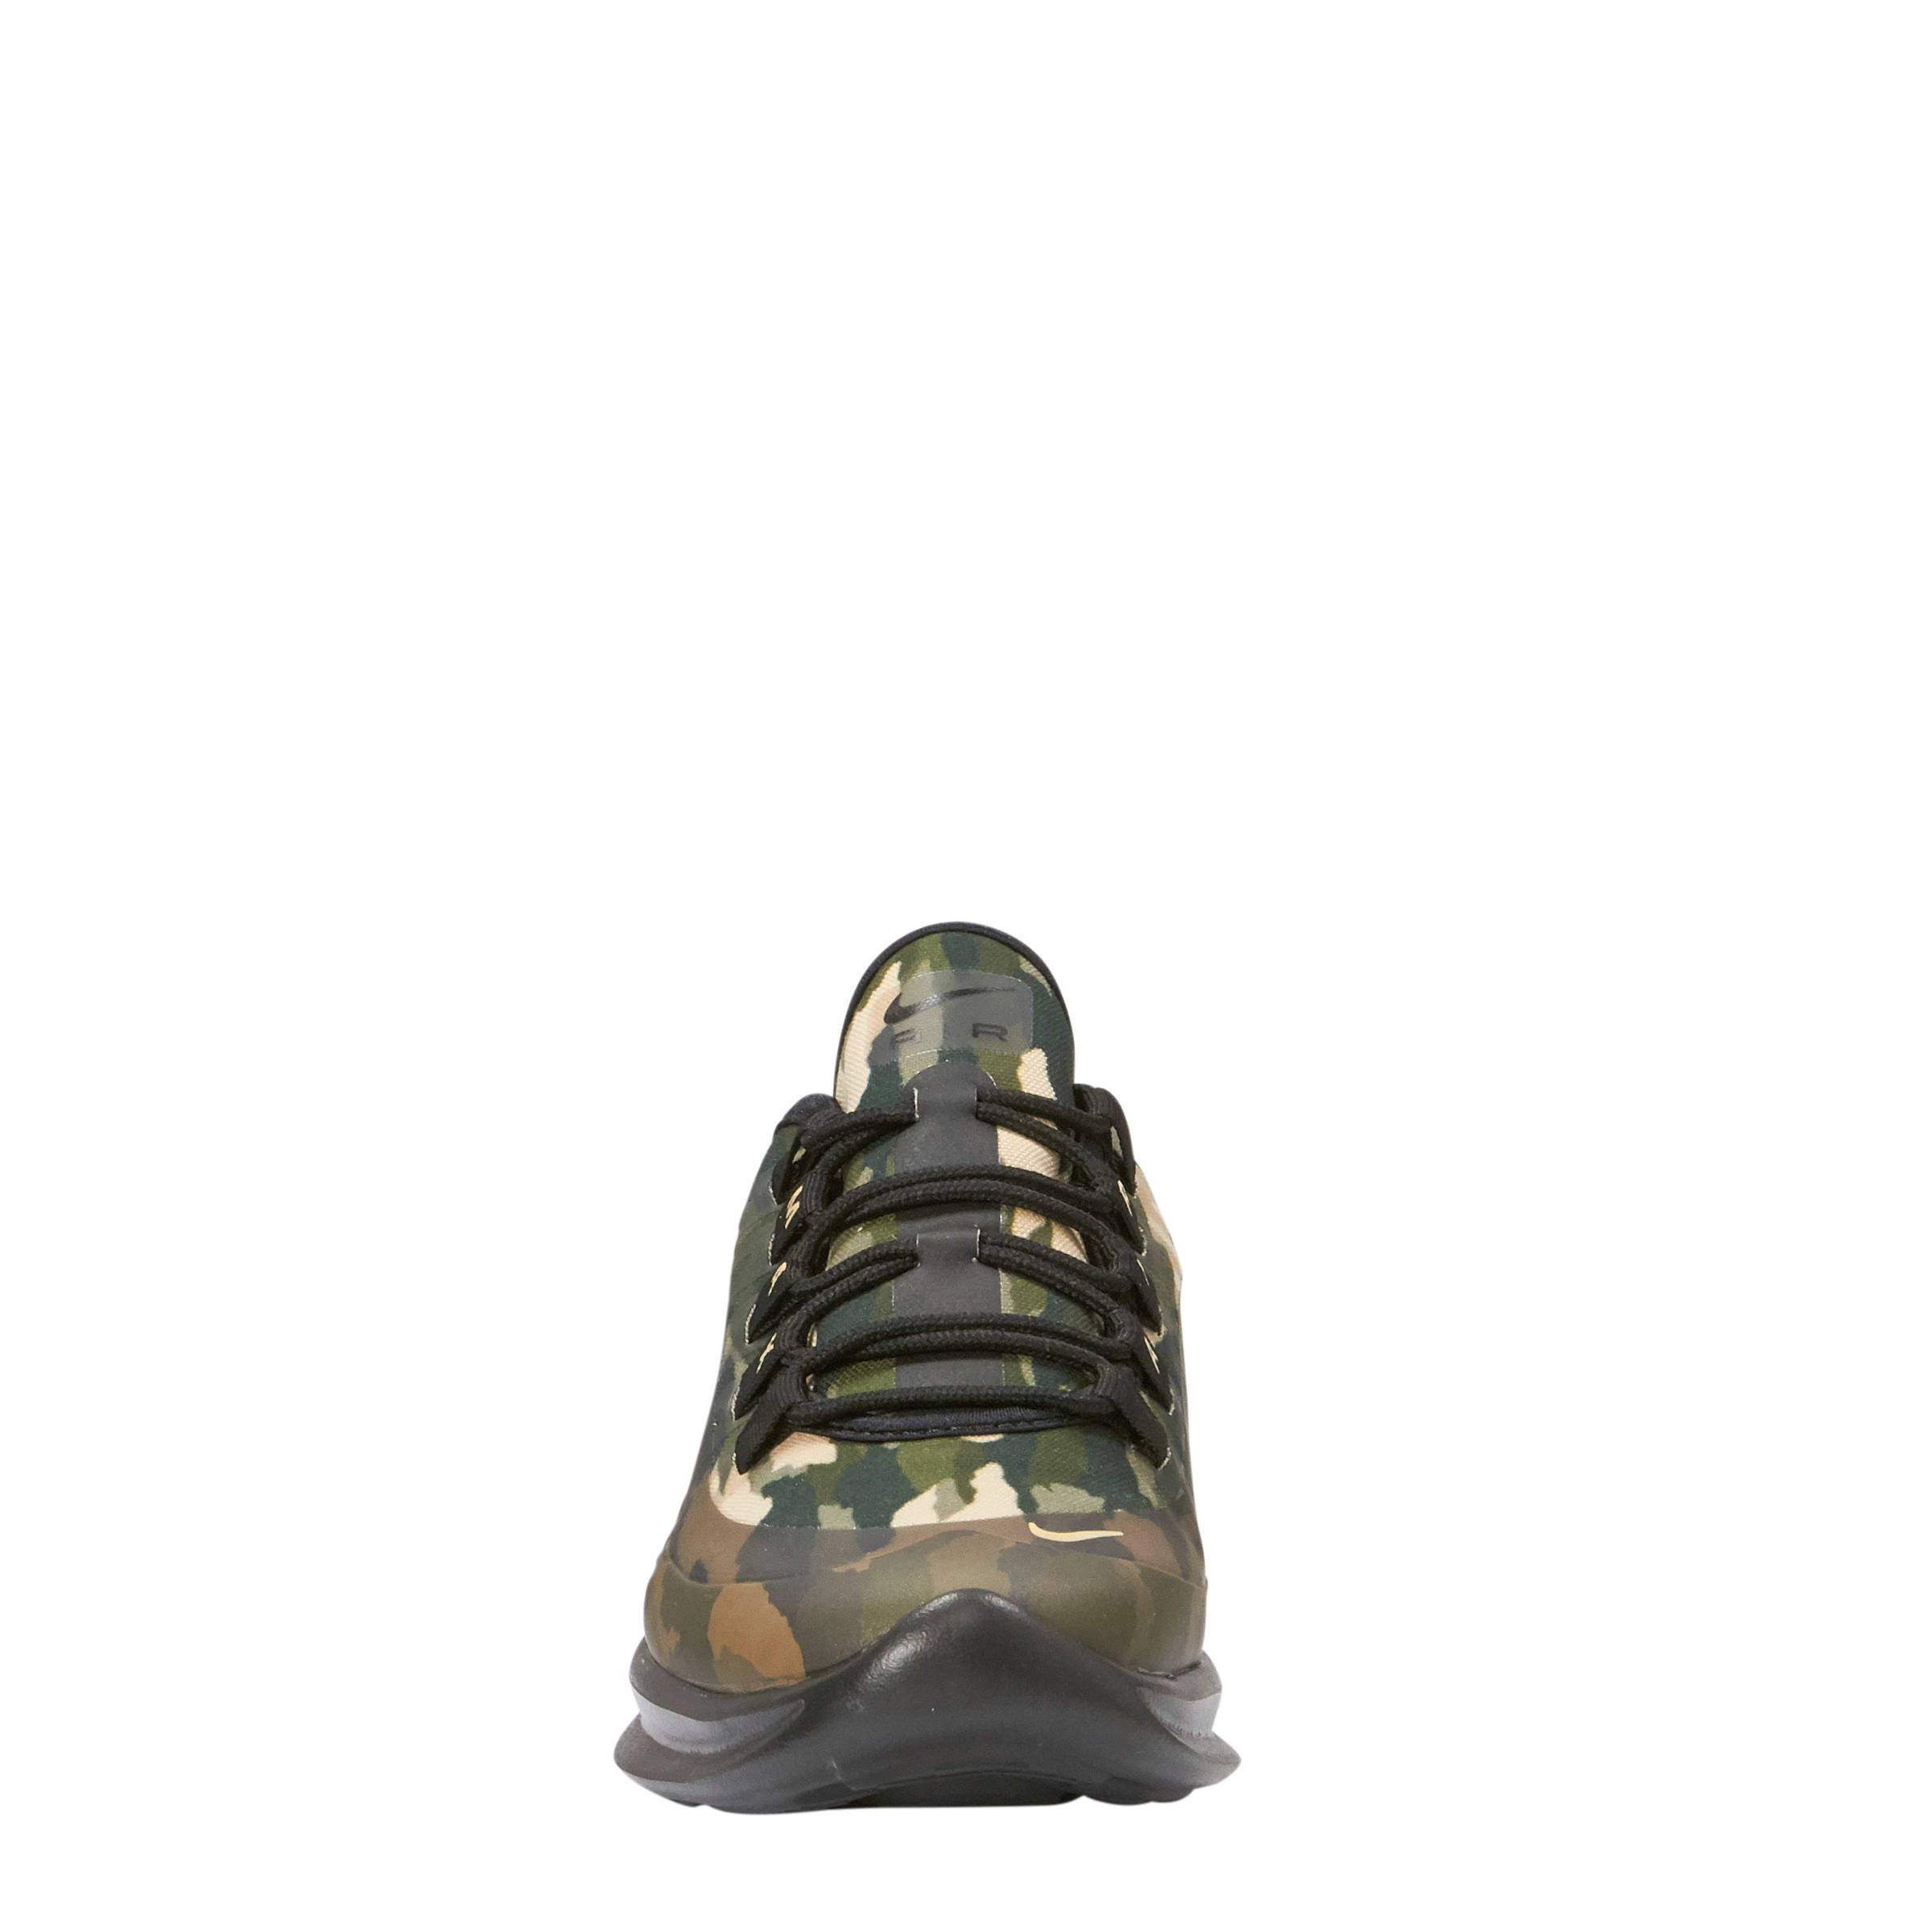 Air Max Axis Premium camouflage sneakers